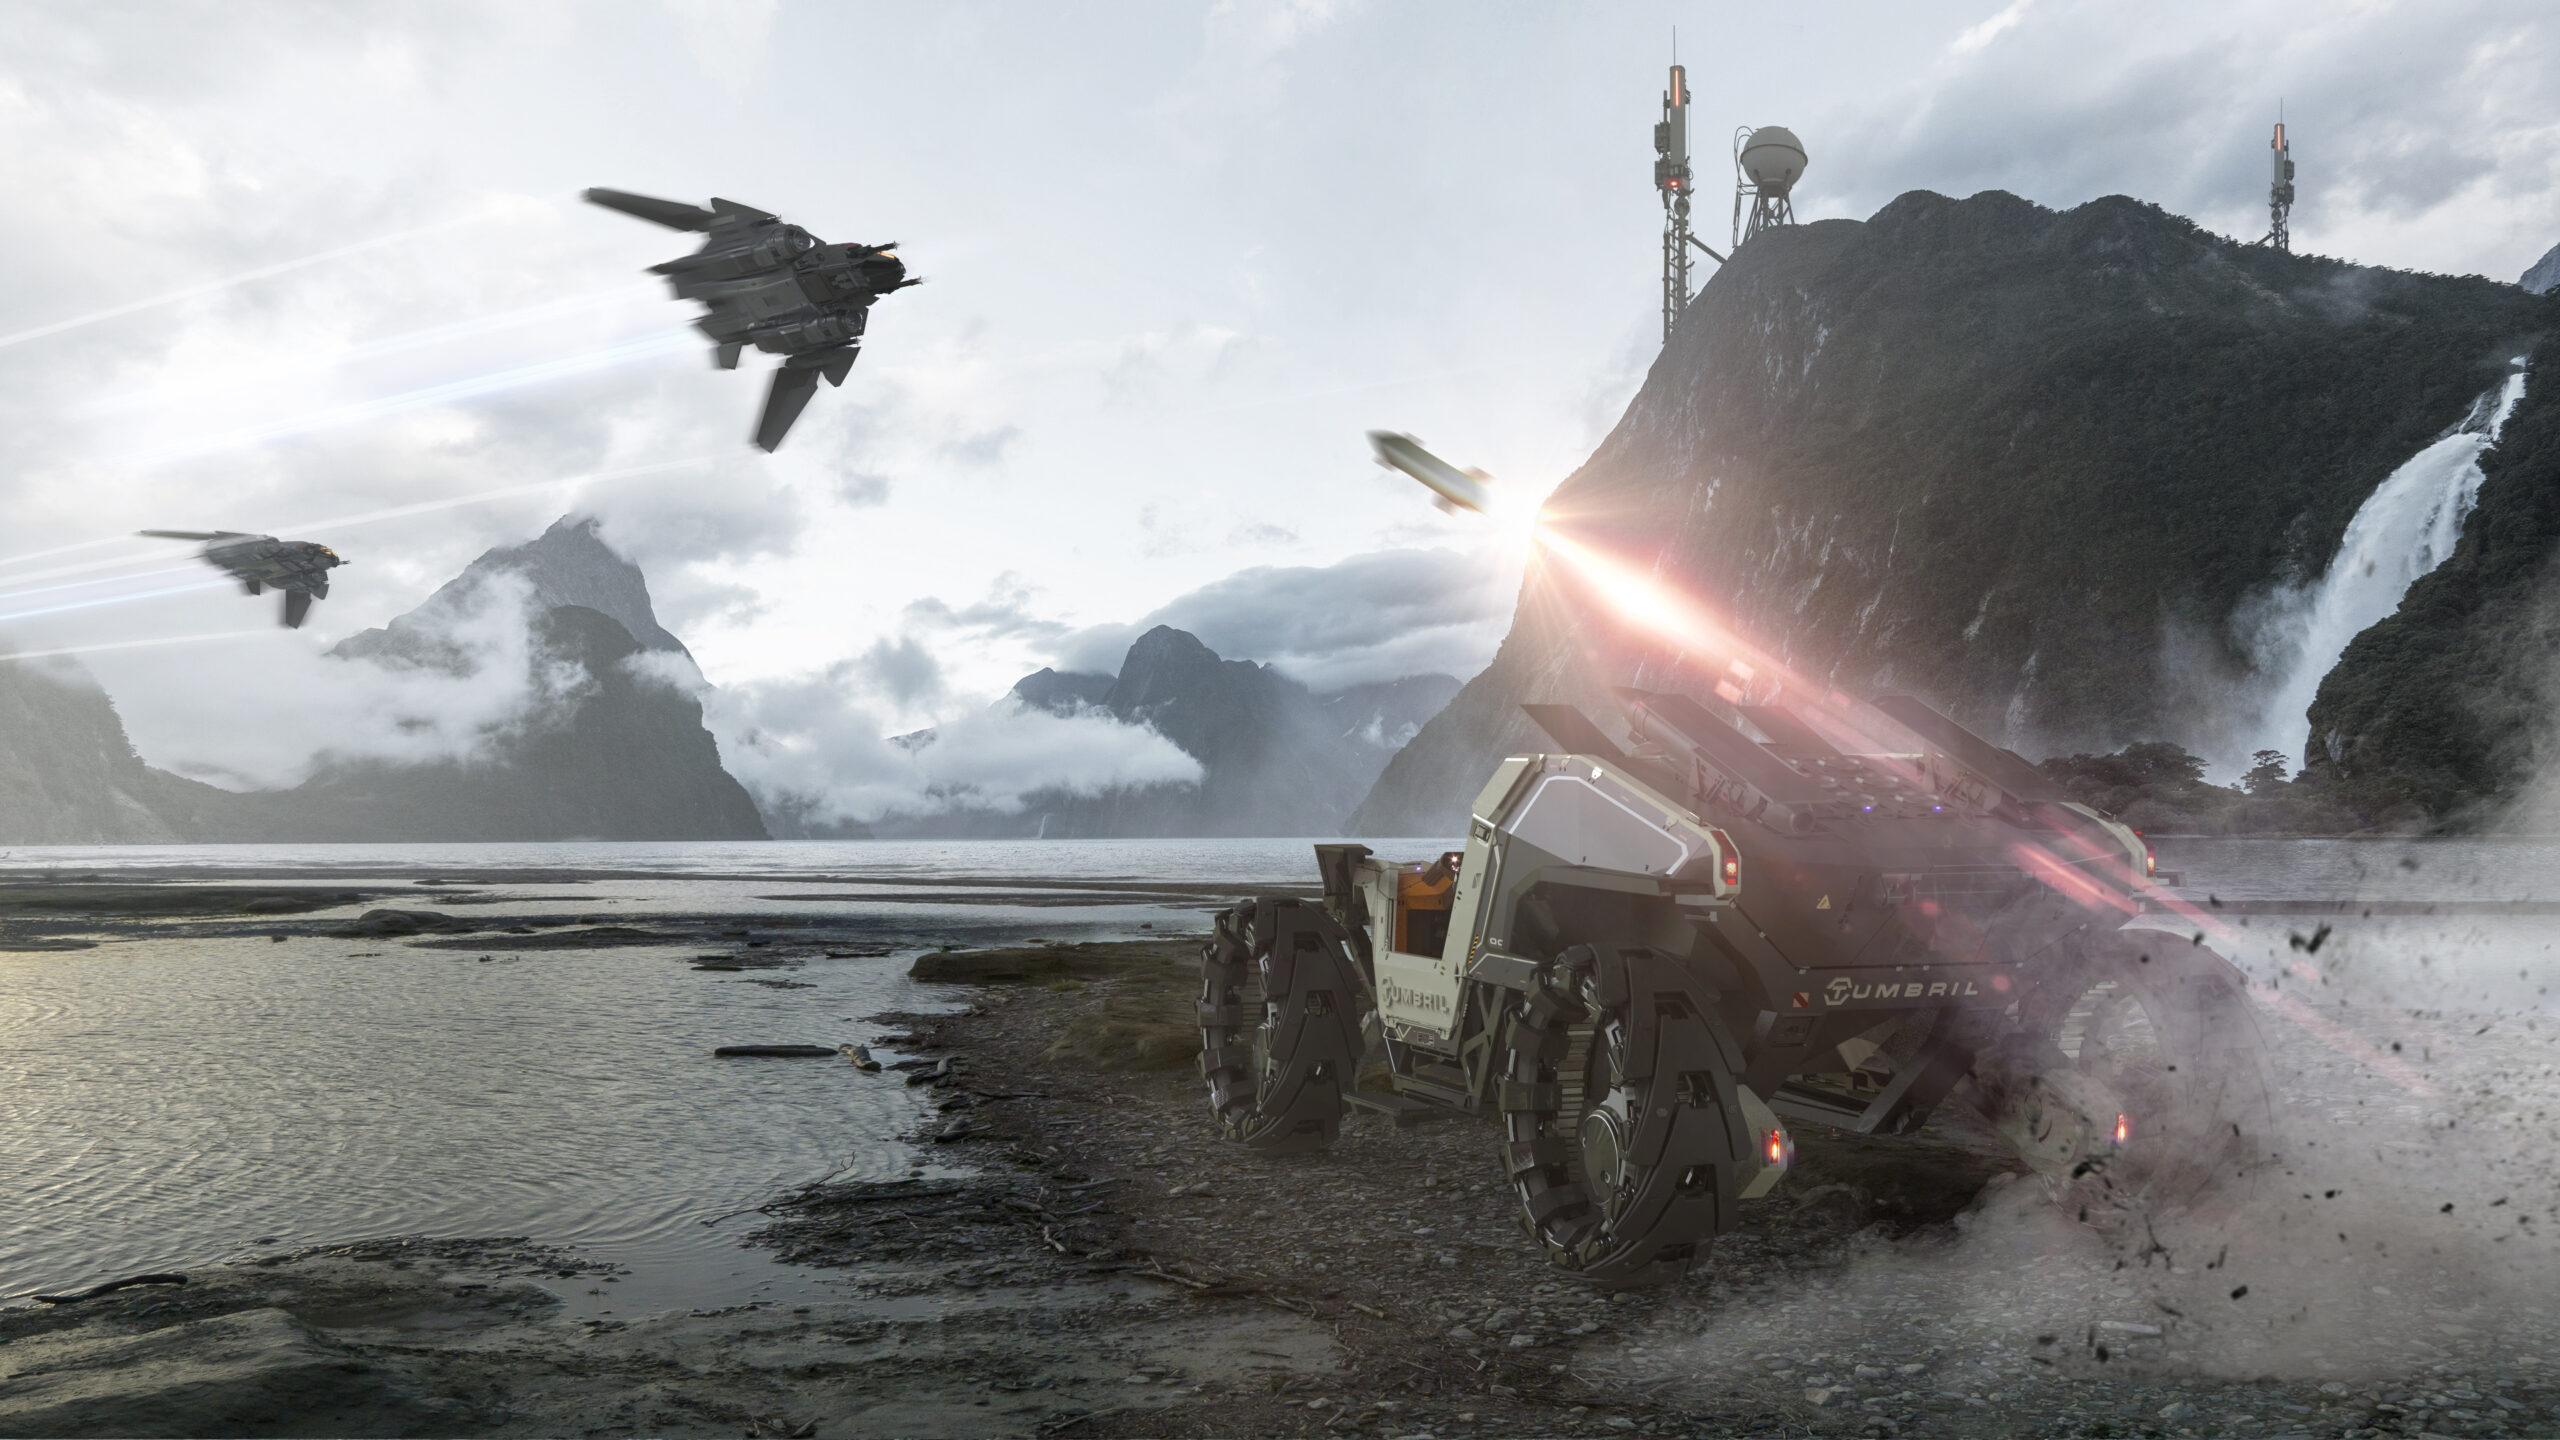 Tumbril Cyclone-AA vs Aegis Sabre stealth fighter.